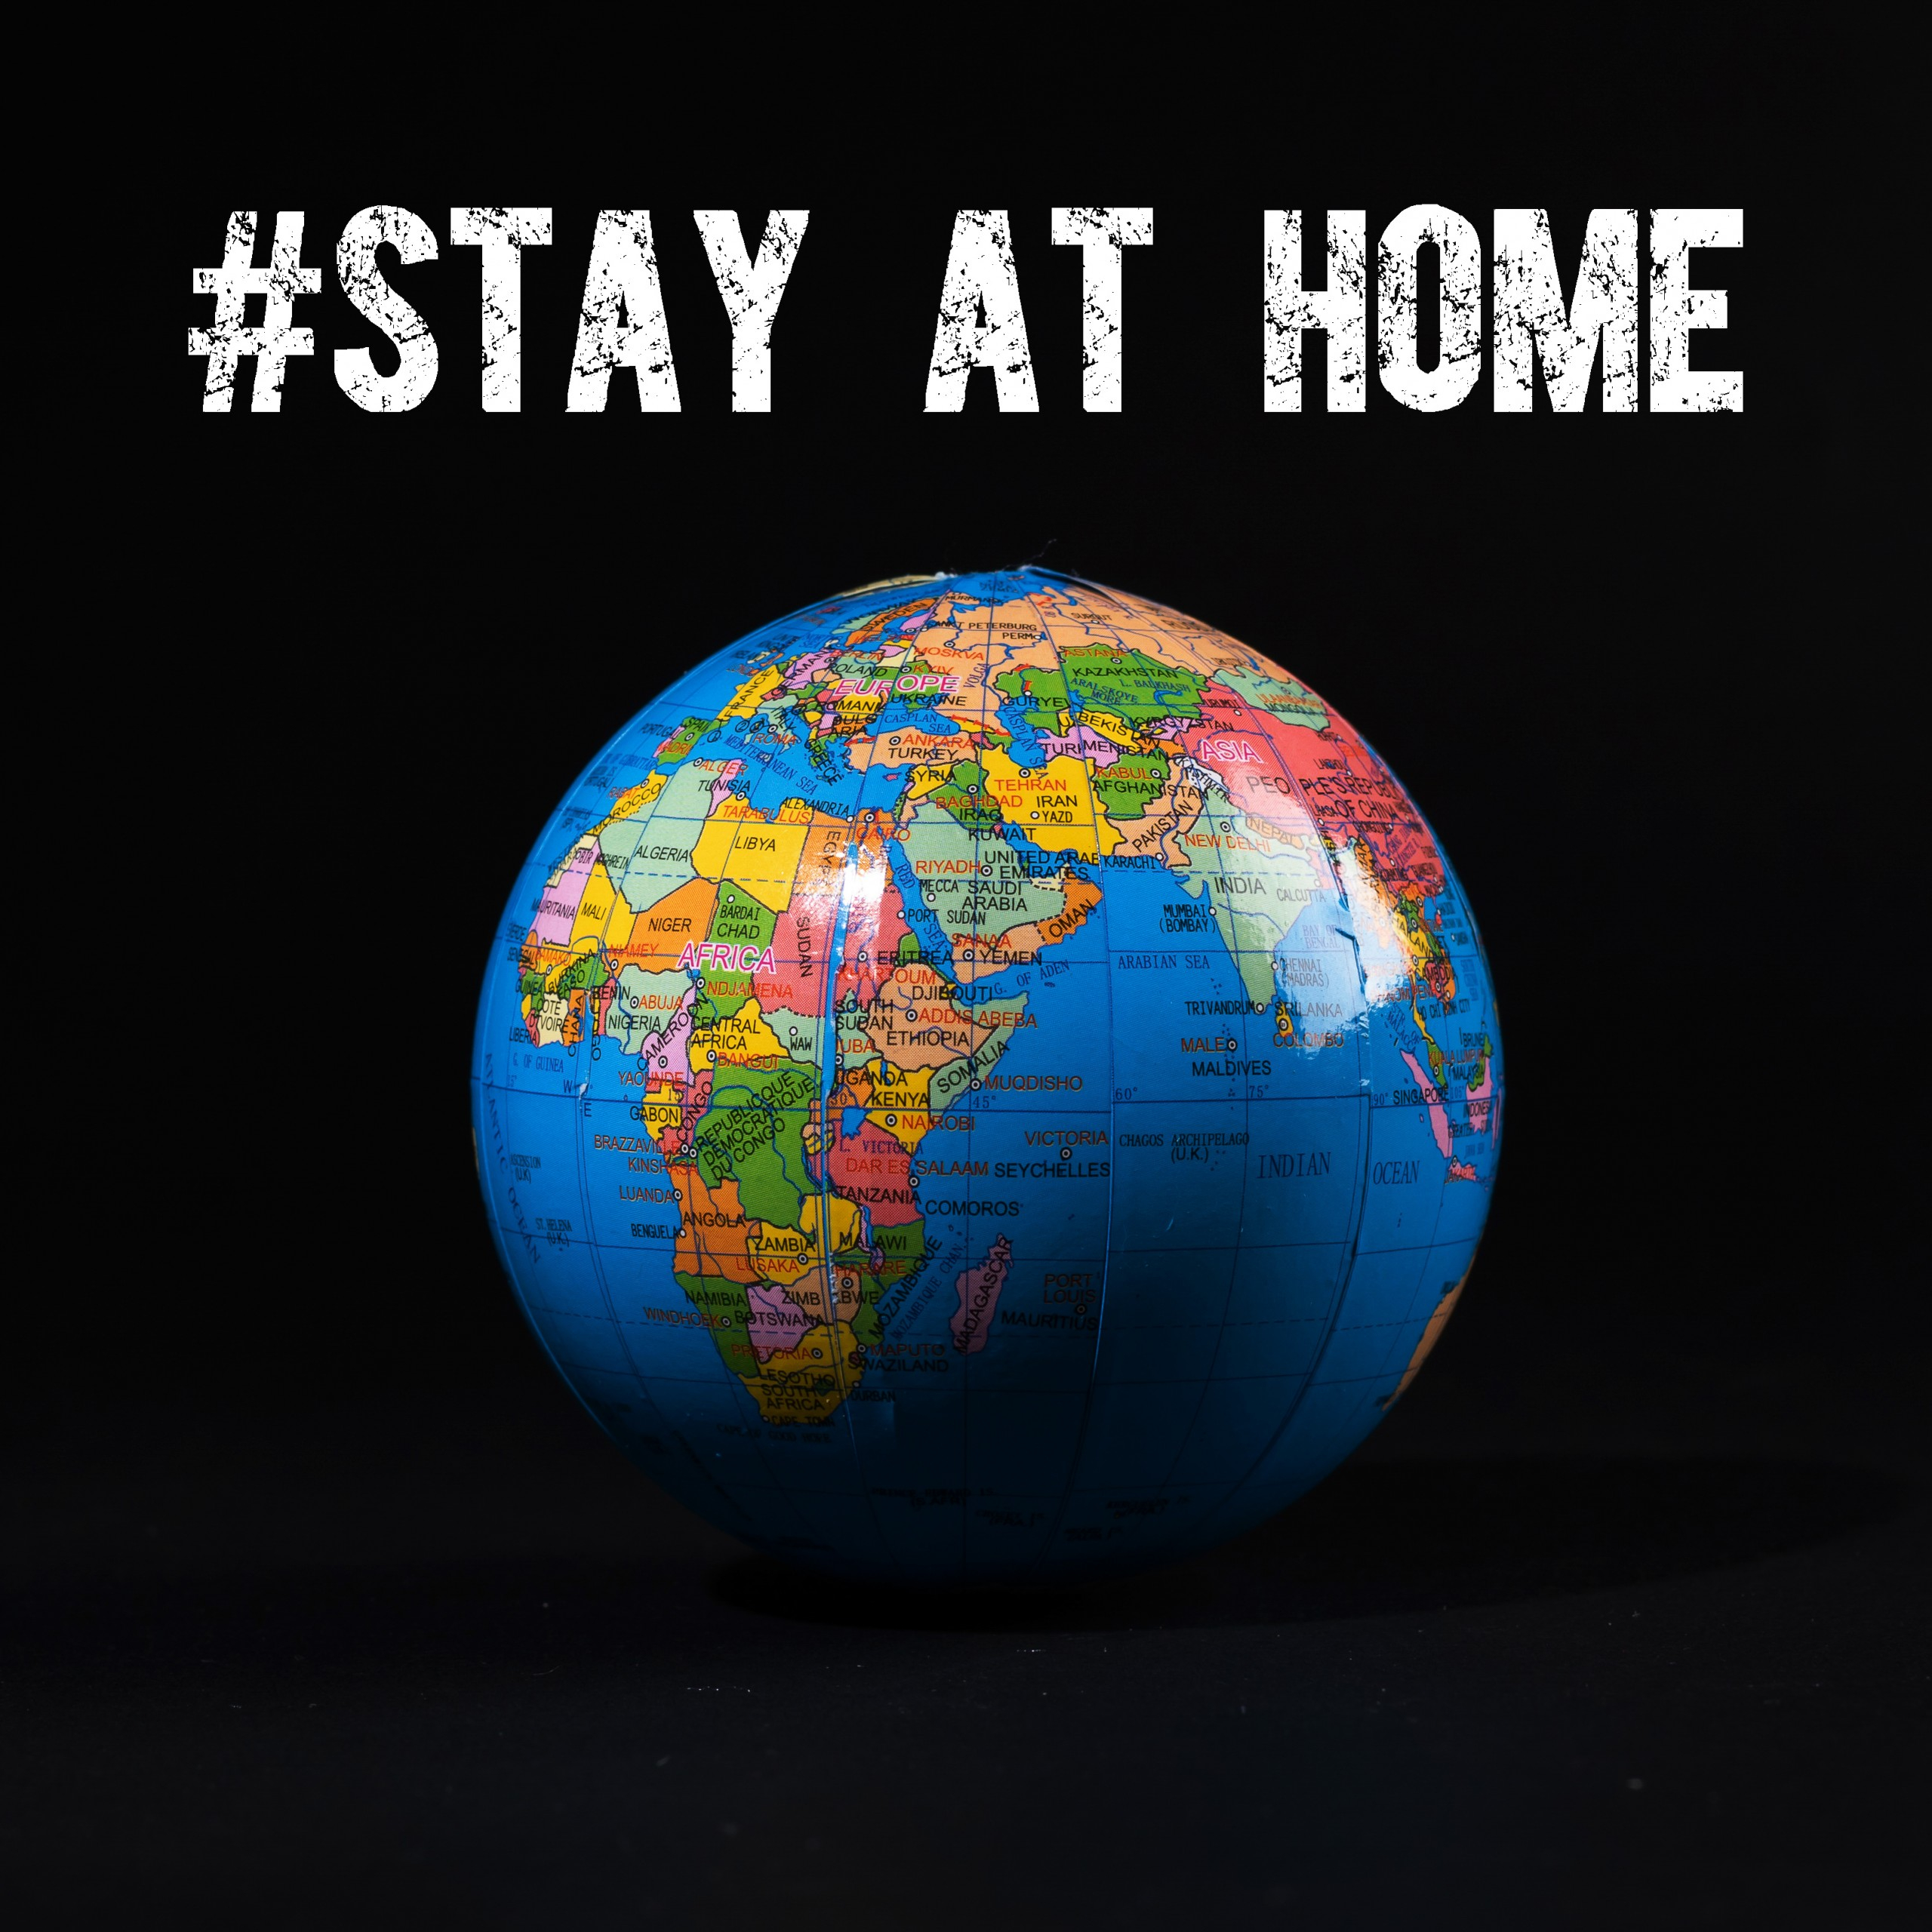 stay home stop covid 19 globe earth black background 5k 501